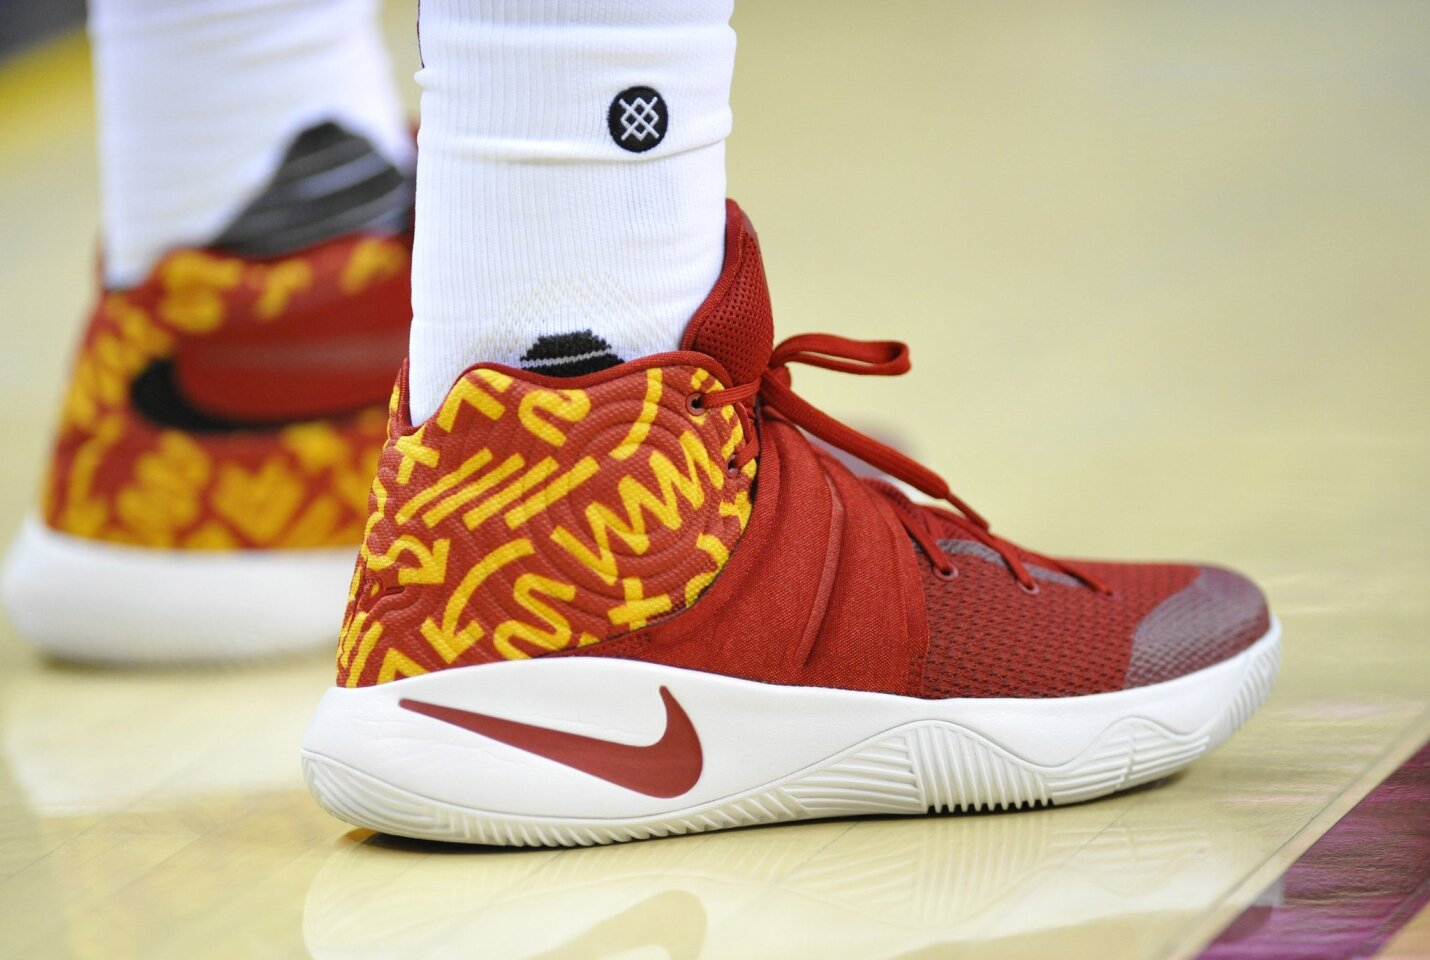 Feb 8, 2016; Cleveland, OH, USA; A general view of the shoes of Cleveland Cavaliers guard Kyrie Irving (2) in the third quarter of a game against the Sacramento Kings at Quicken Loans Arena. Mandatory Credit: David Richard-USA TODAY Sports ** Usable by SD ONLY **